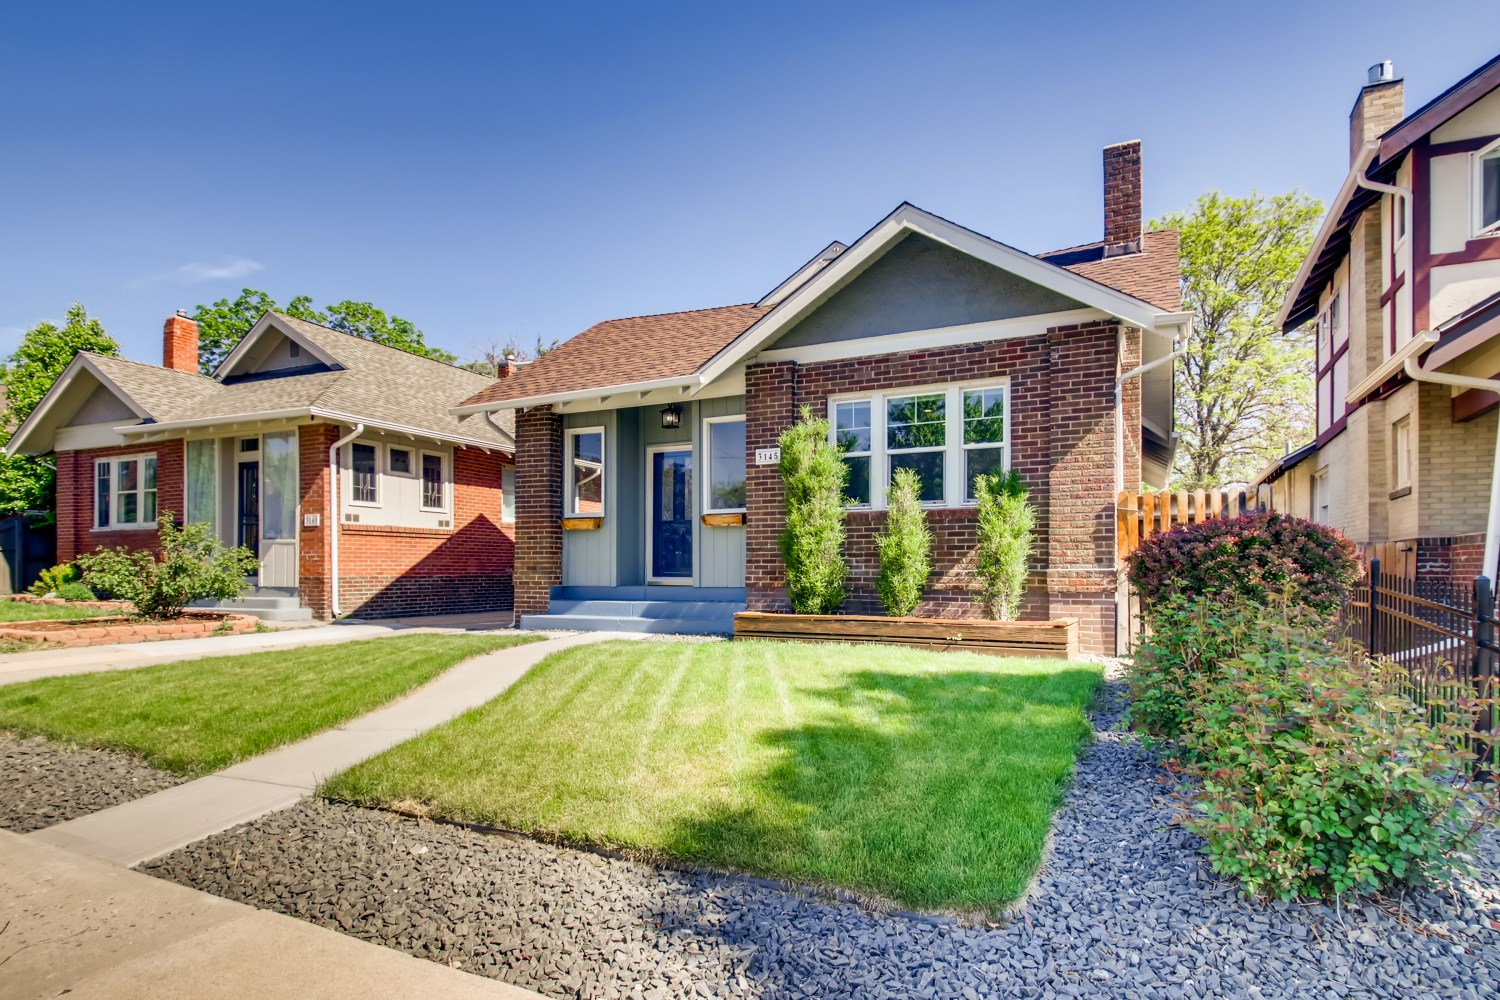 3145 W 44th Ave Denver CO - Web Quality - 001 - 01 Exterior Front